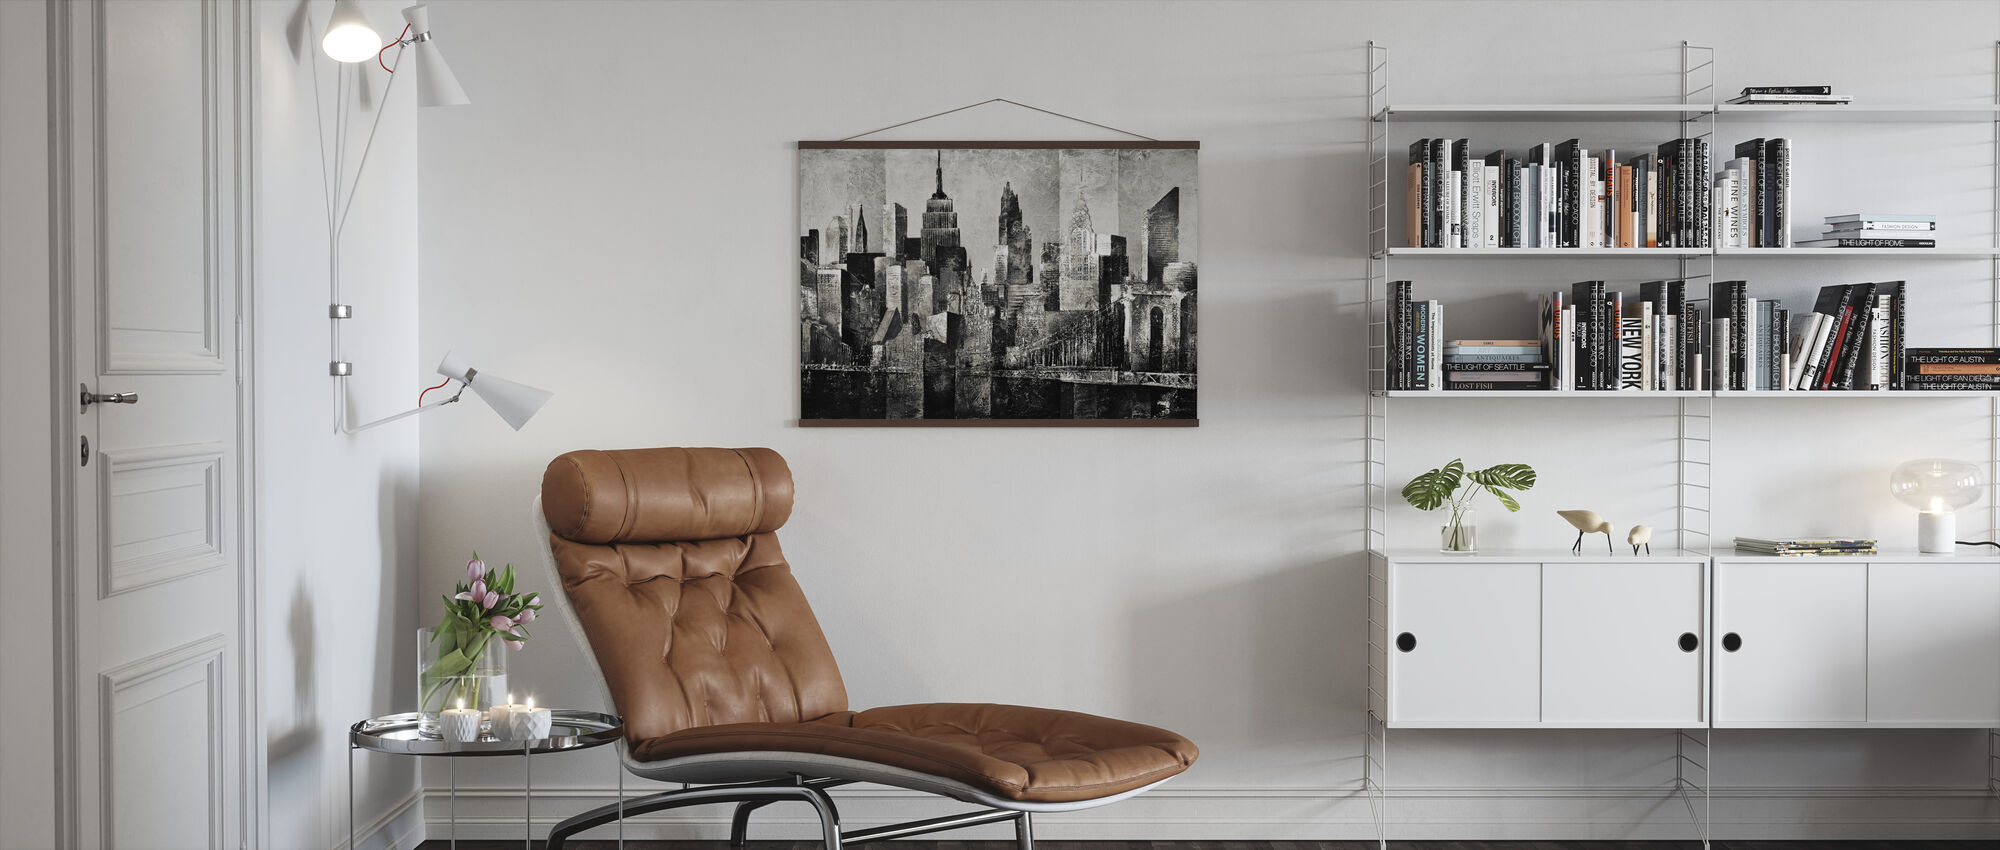 New York Skyline Art - bw - Plakat - Stue